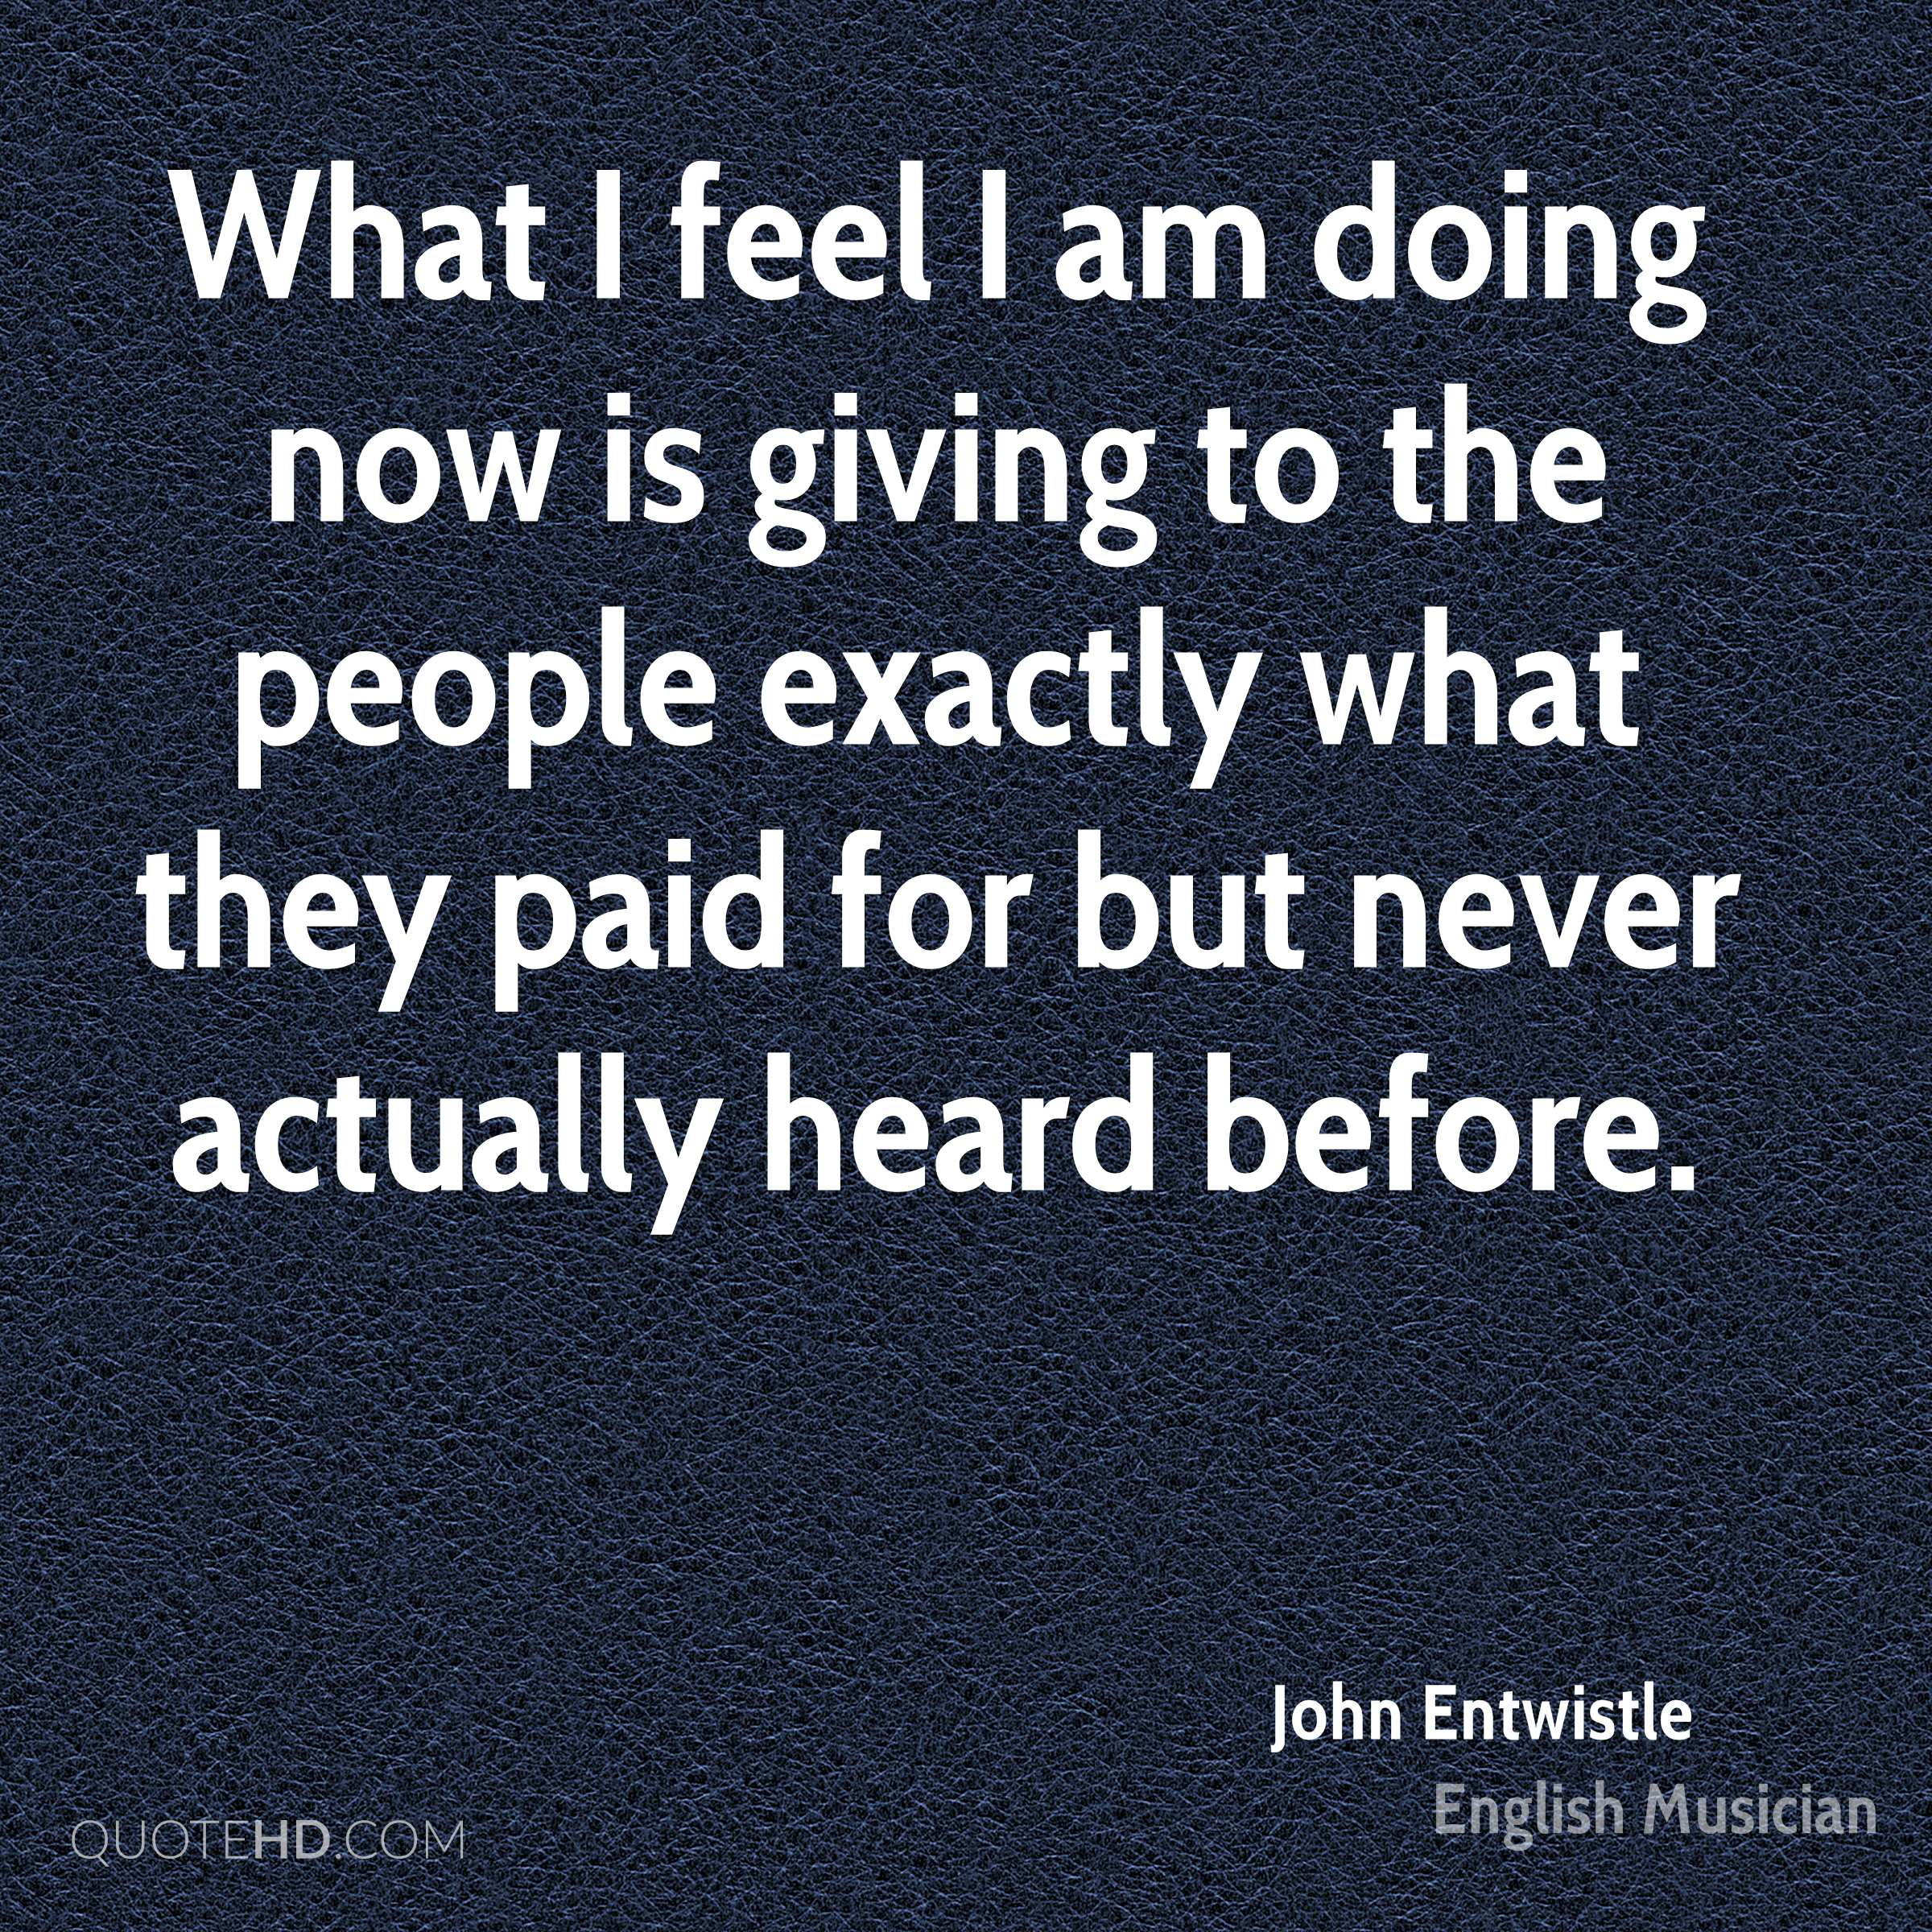 What I feel I am doing now is giving to the people exactly what they paid for but never actually heard before.